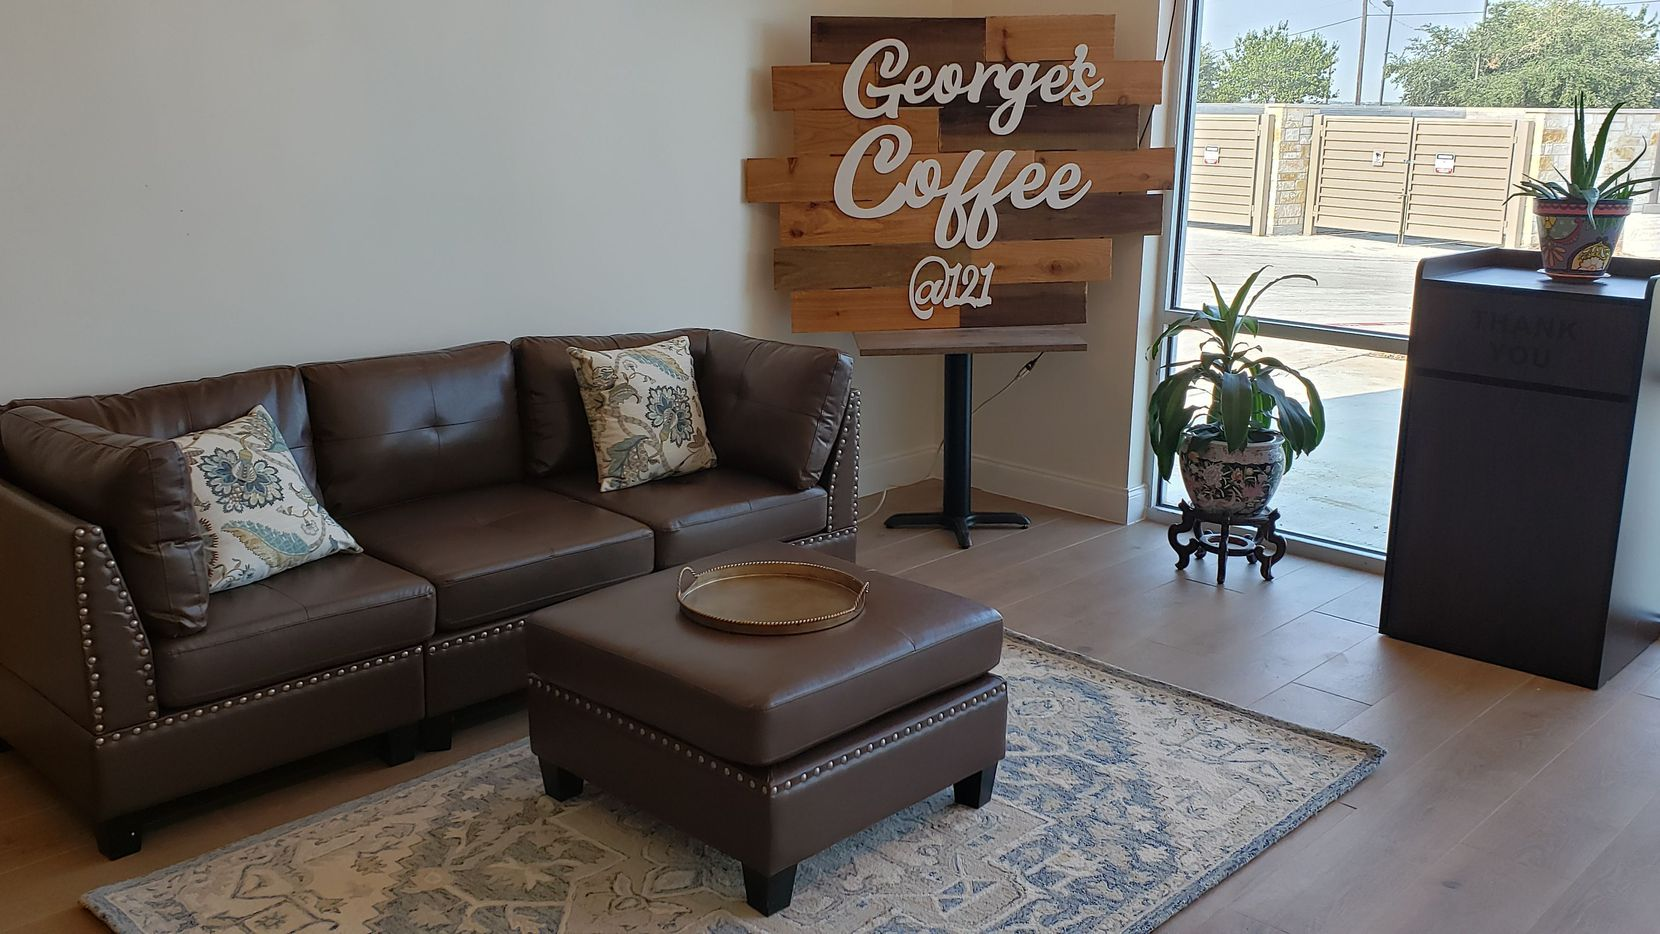 George's Coffee @121 is now open in Melissa.